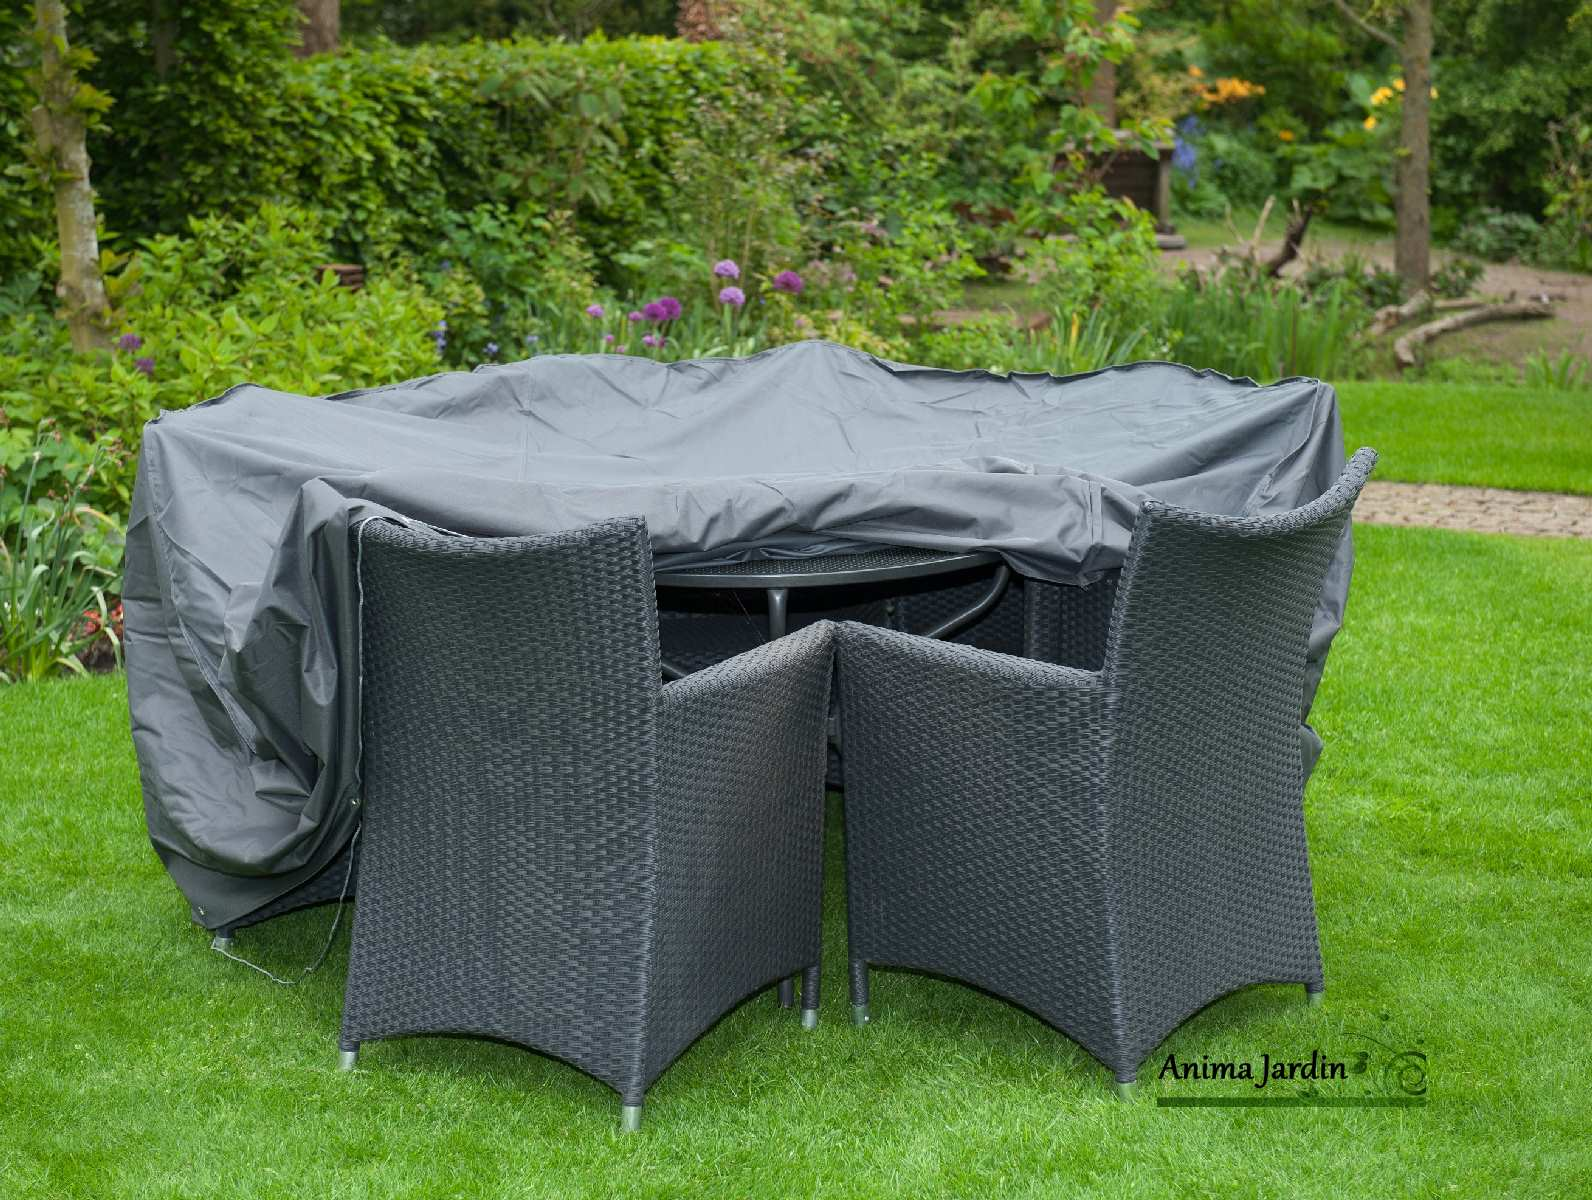 Housse De Table De Jardin Housse De Protection Salon De Jardin Table Ronde Imperméable